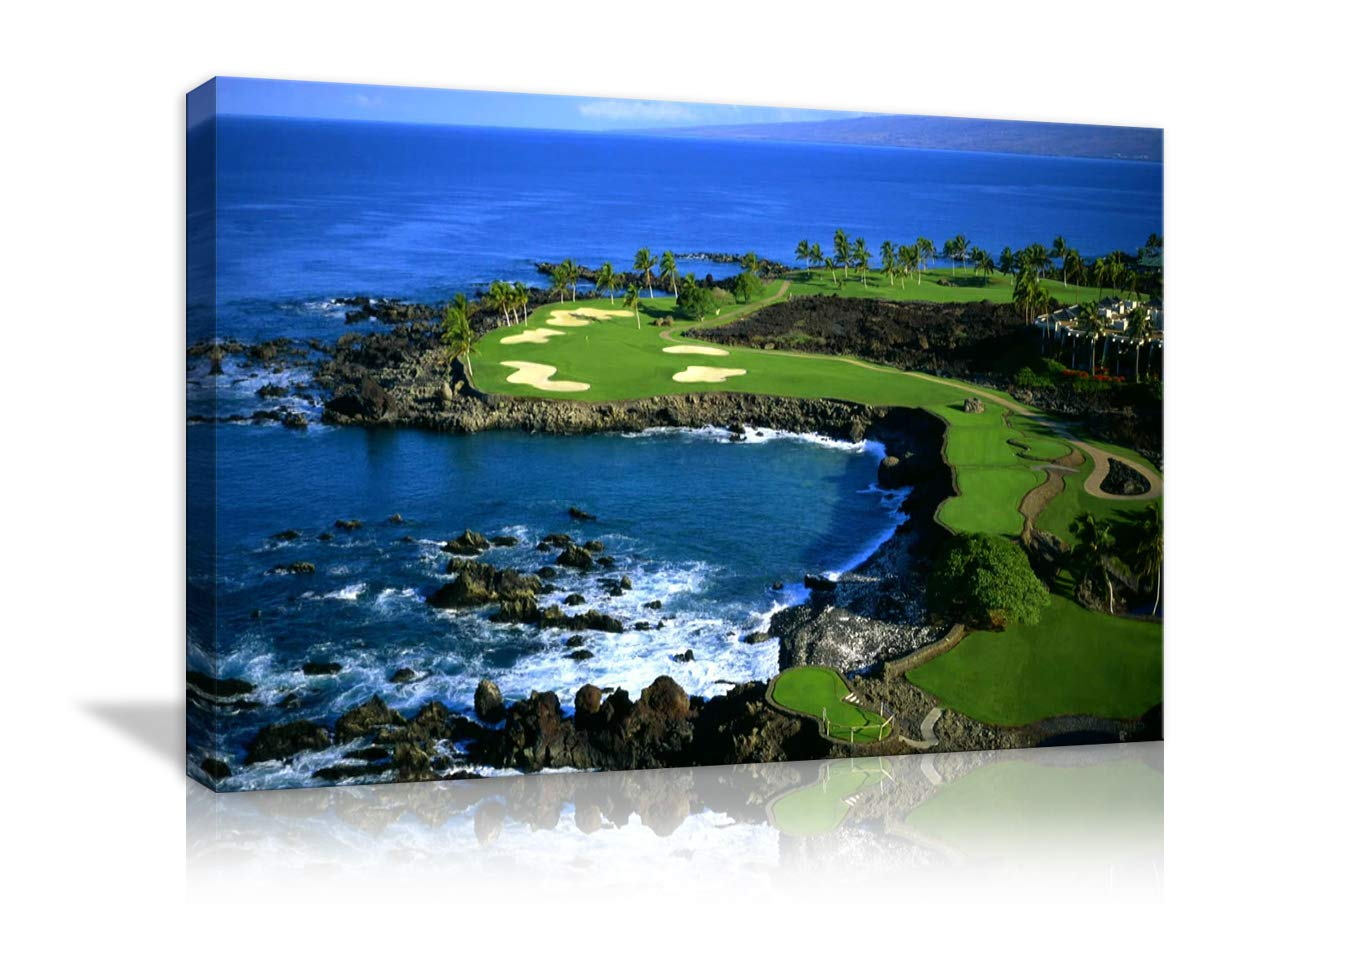 AMEMNY Modern Golf Course Landscape Painting Canvas Wall Art Posters and Clear Water Bule Sky Landscape Artwork HD Prints Pictures Decor for Living Room Framed Stretched Ready to Hang(36''Wx24''H)